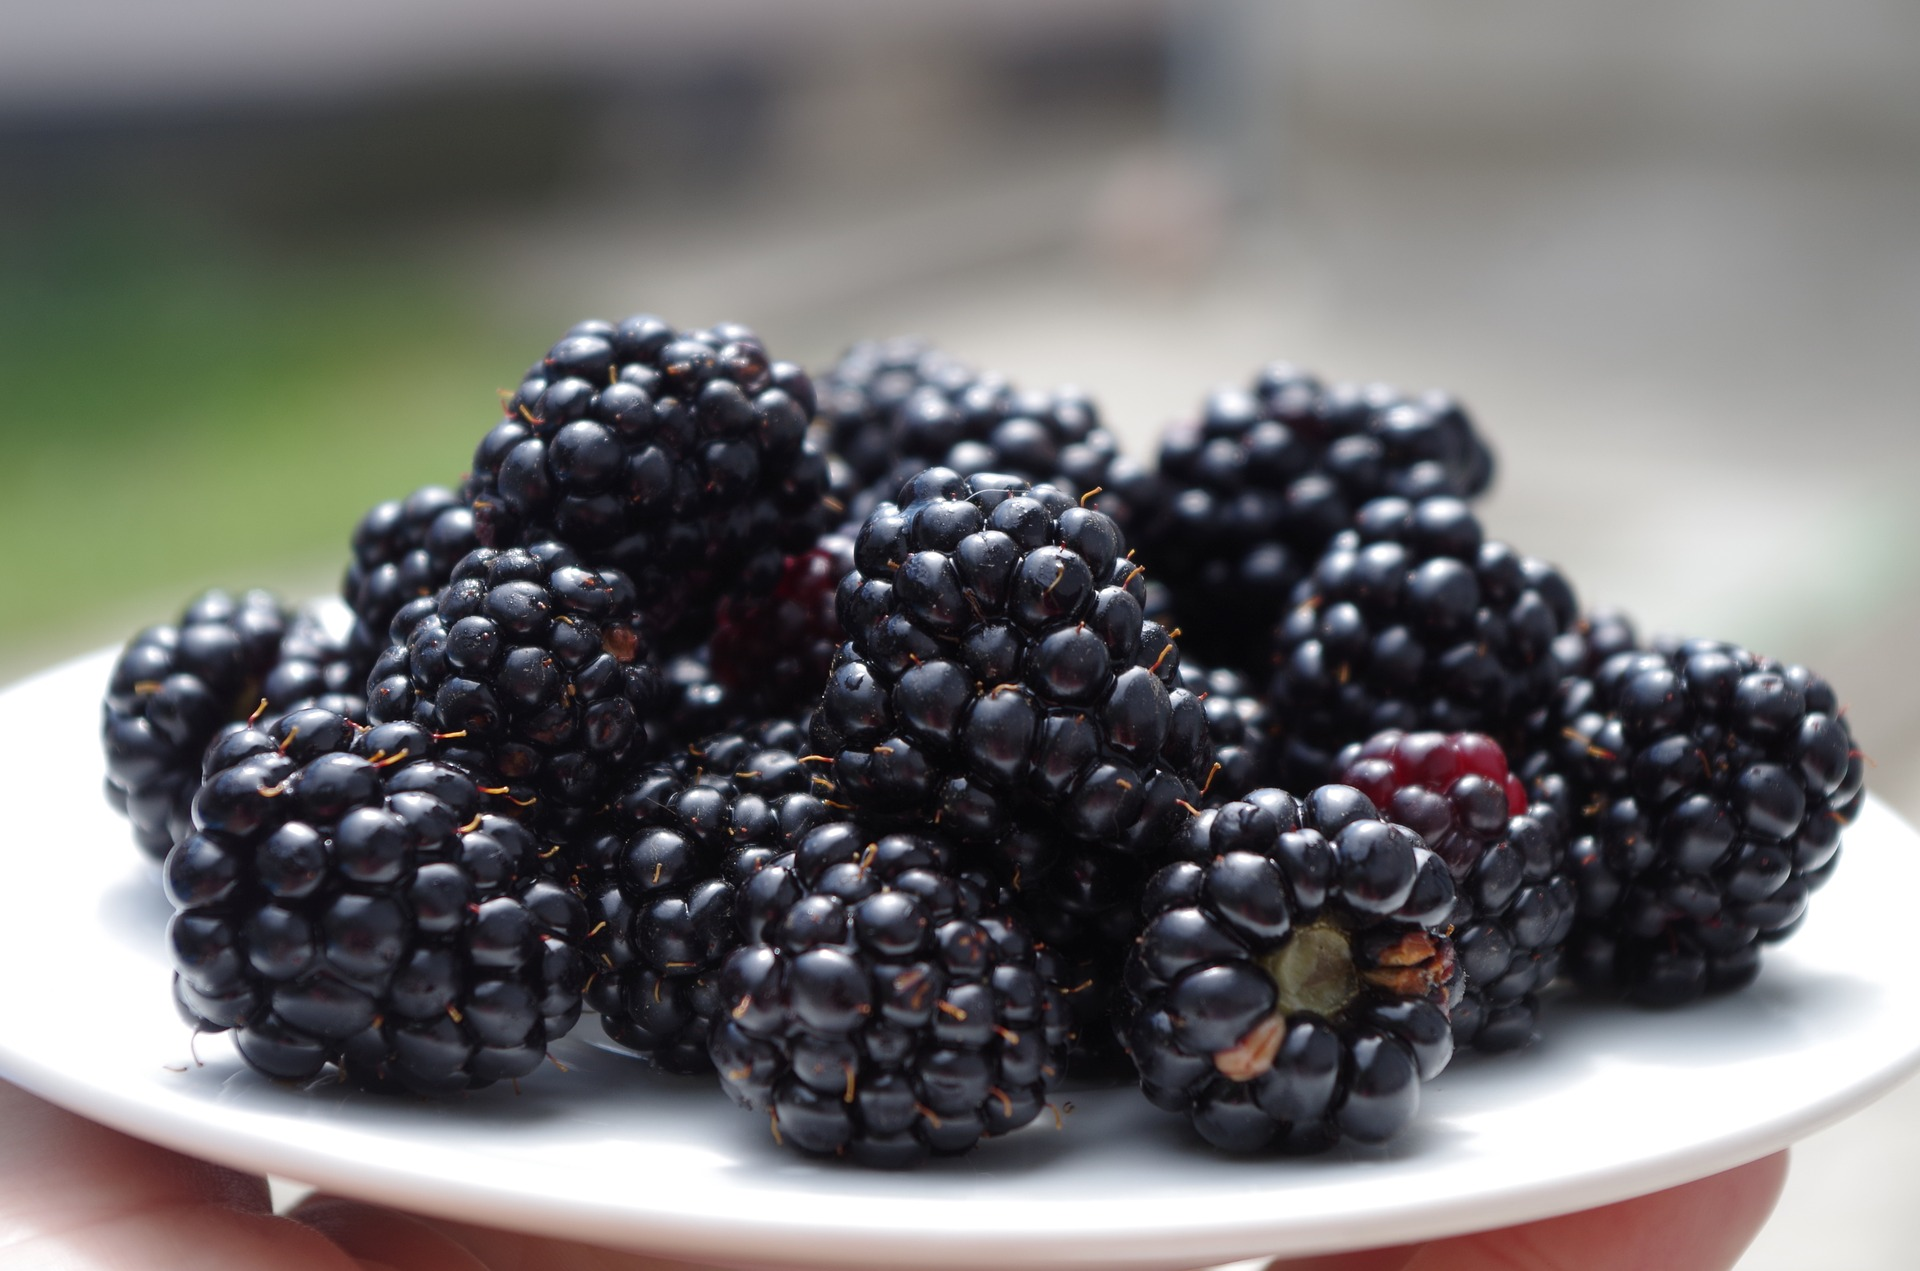 Basic Calories In Blackberries